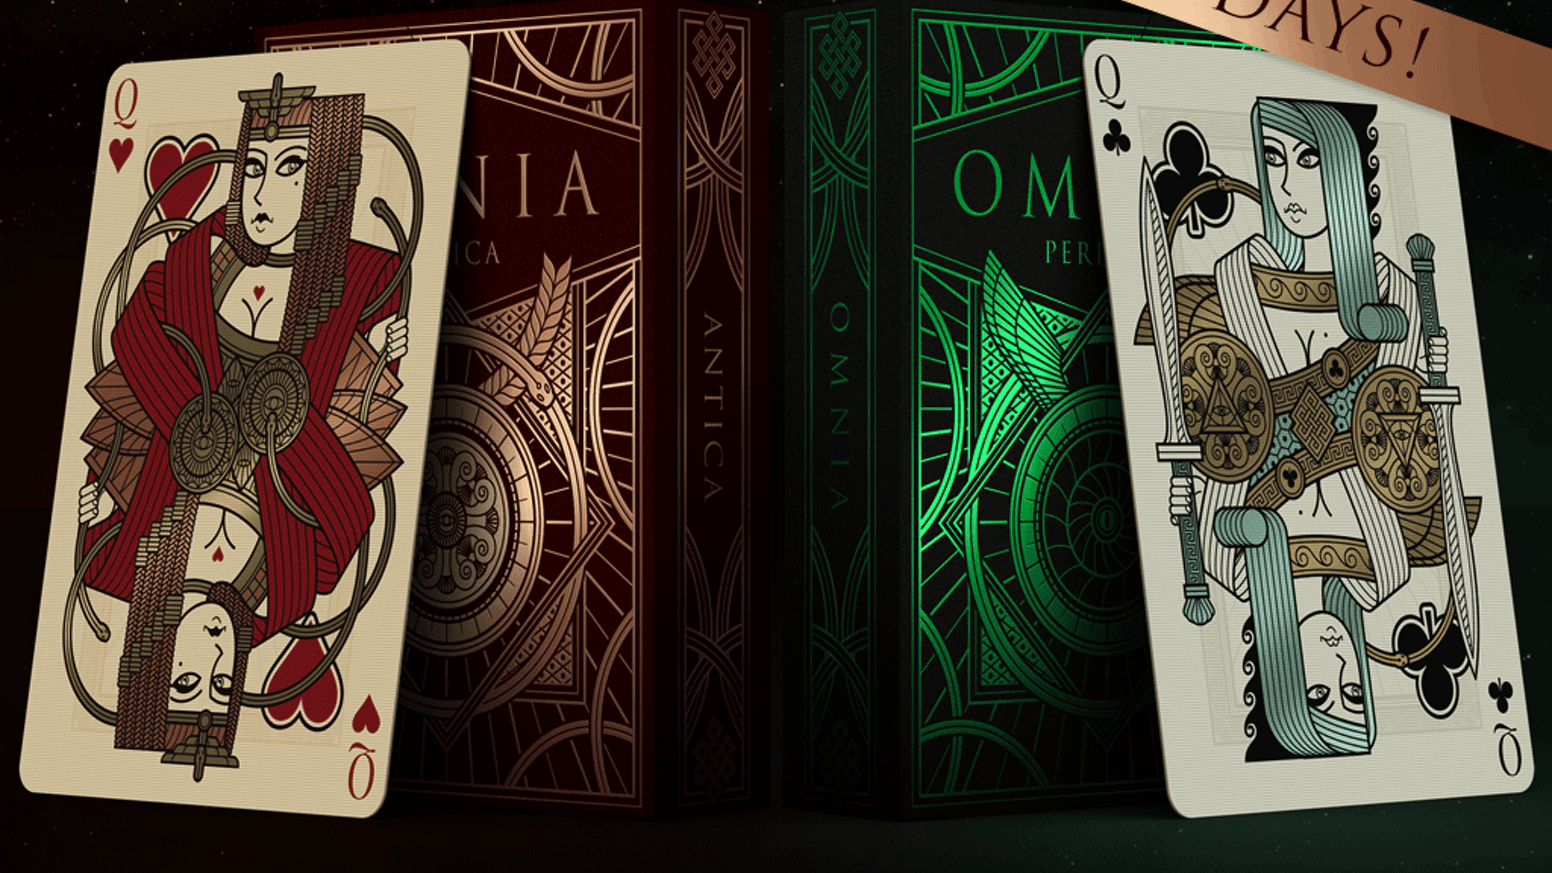 Custom poker size playing cards. Inspired by ancient symbology, drawn with a sharp and modern style, printed by EPCC.